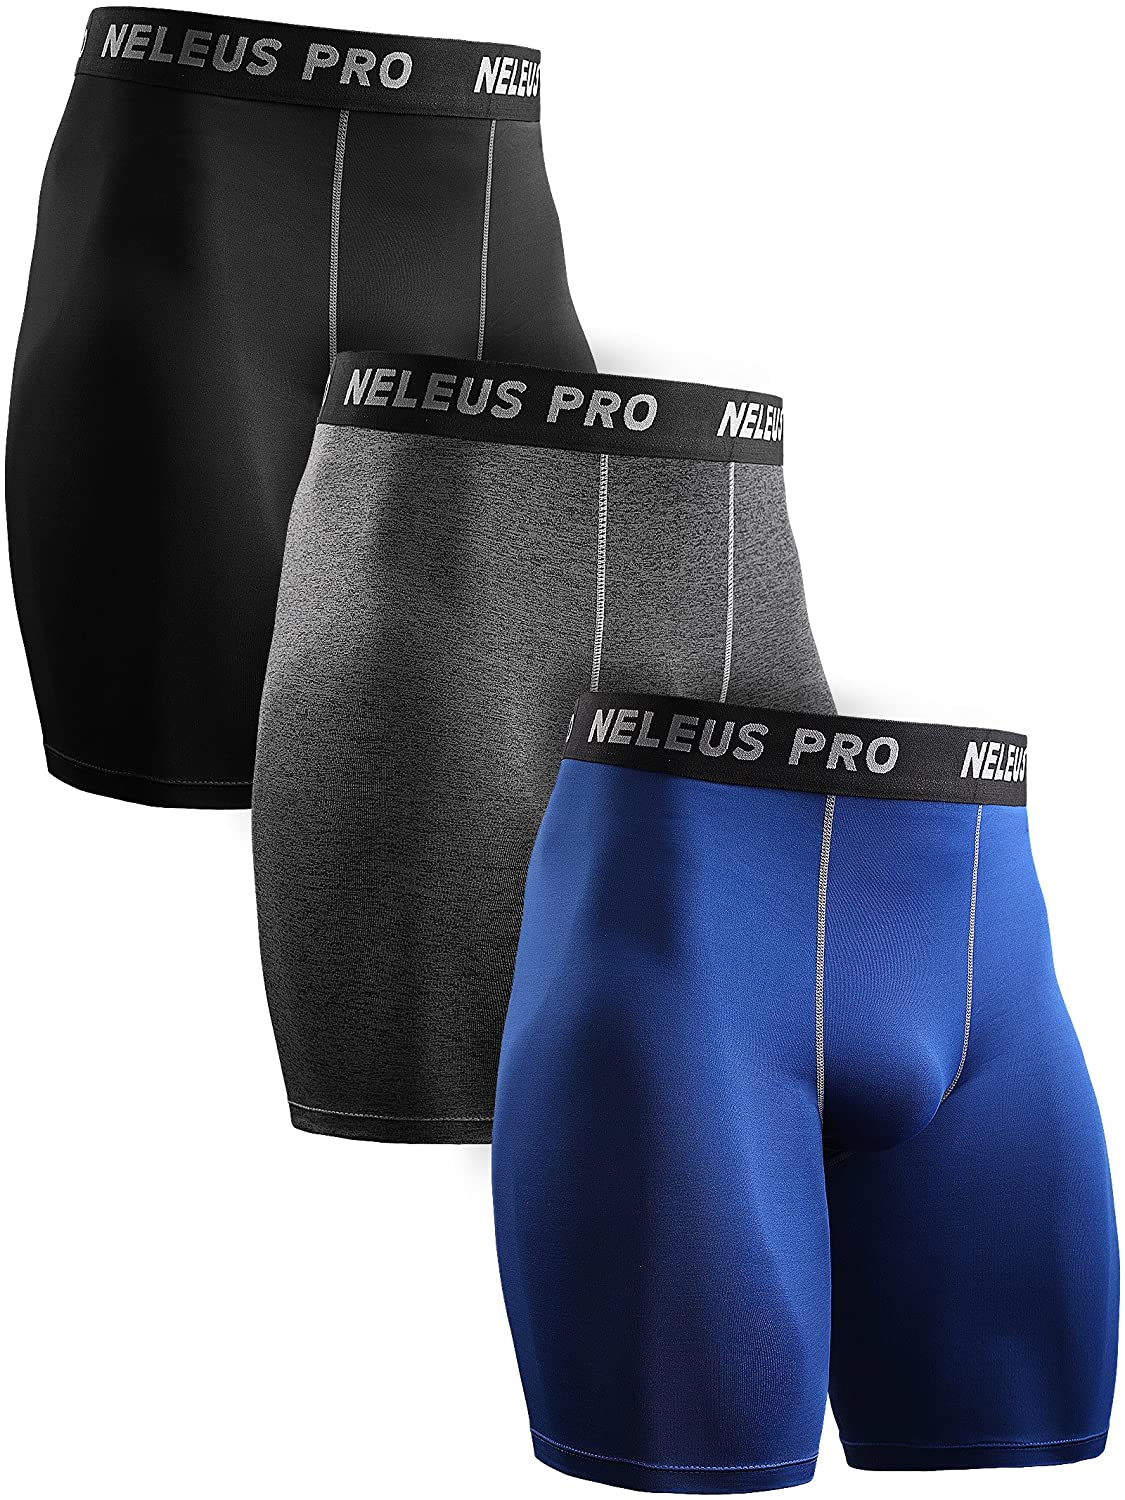 Neleus Men's 3 Pack Compression Athletic Running Shorts,146,Black,Grey,Blue,Medium DK0146B+H+LL#3